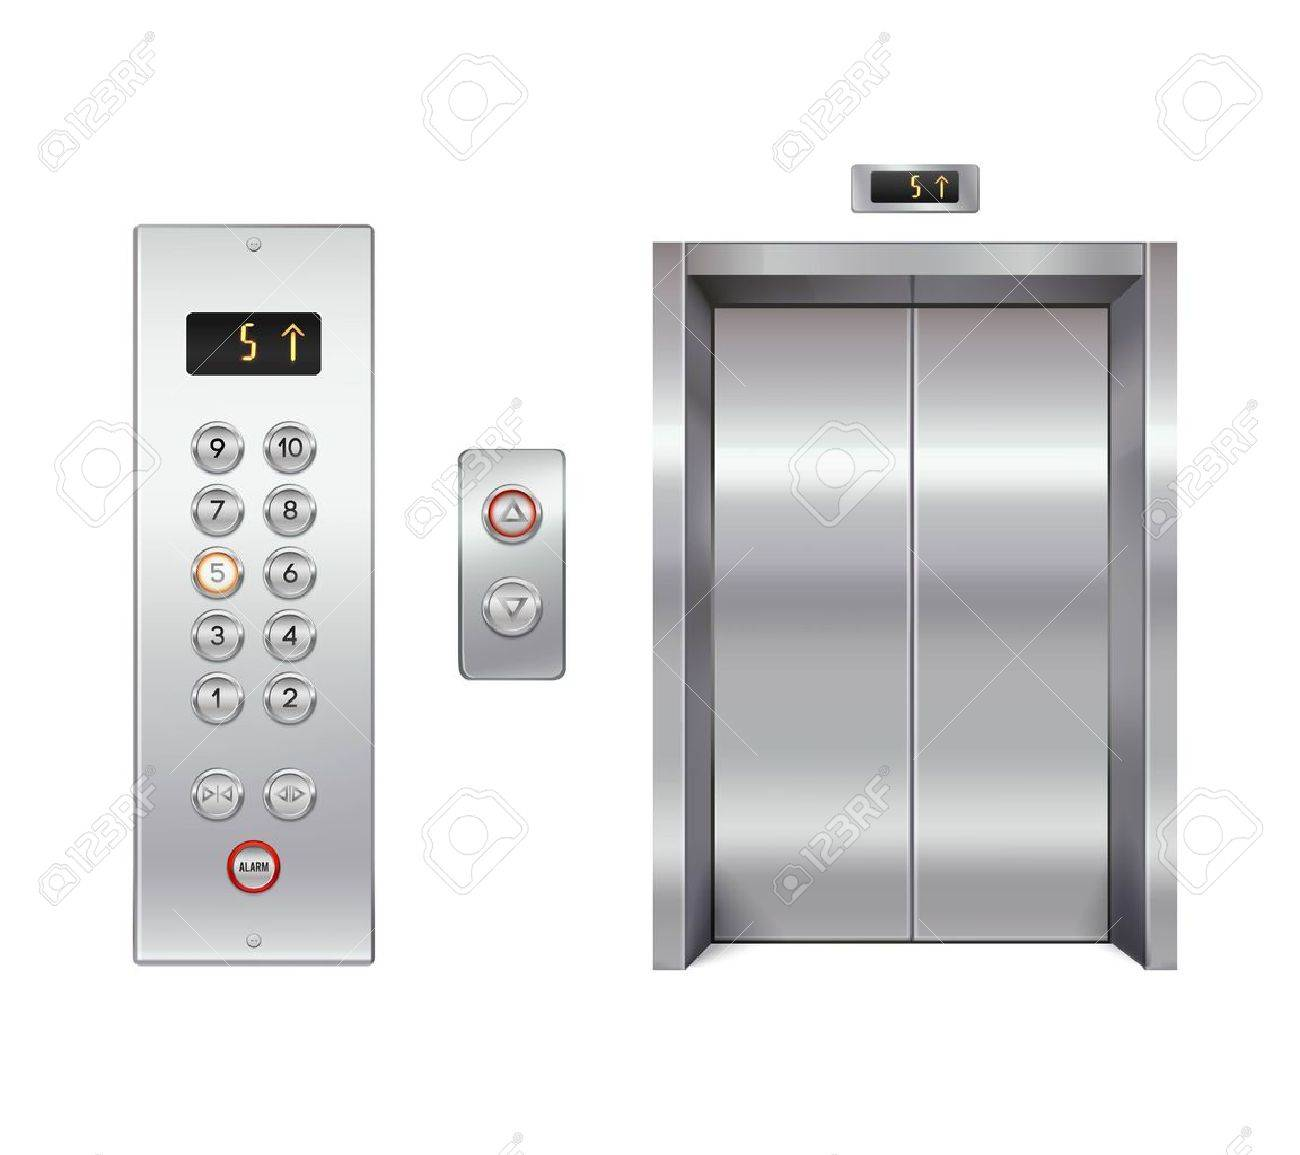 Elevator design set with closed doors and button panel isolated vector illustration Stock Vector - 52695270